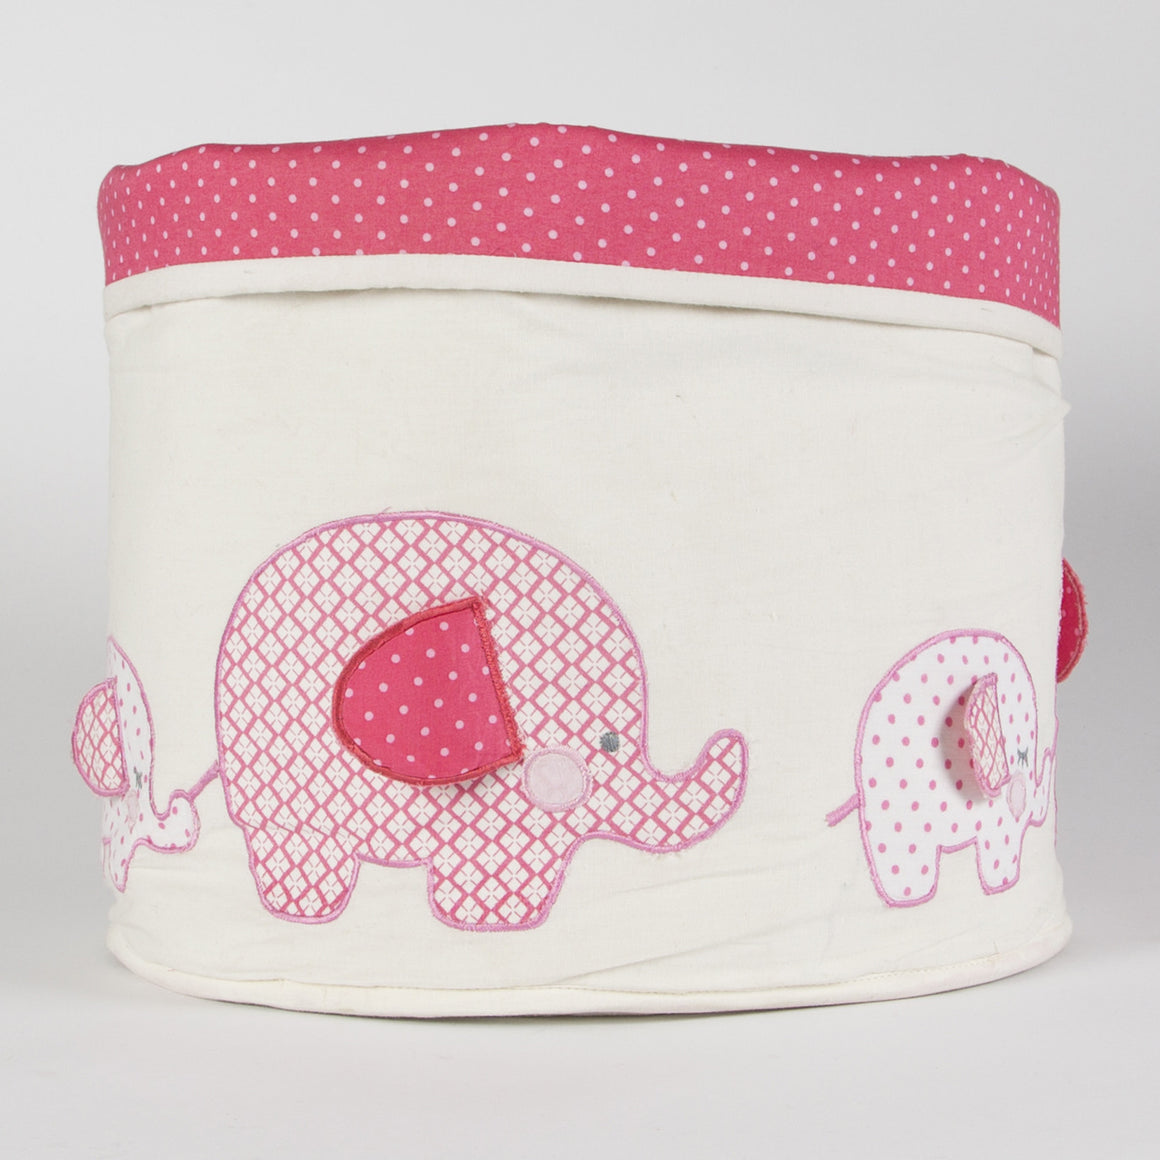 Ella Elephant Storage Basket Pink - The Love Trees